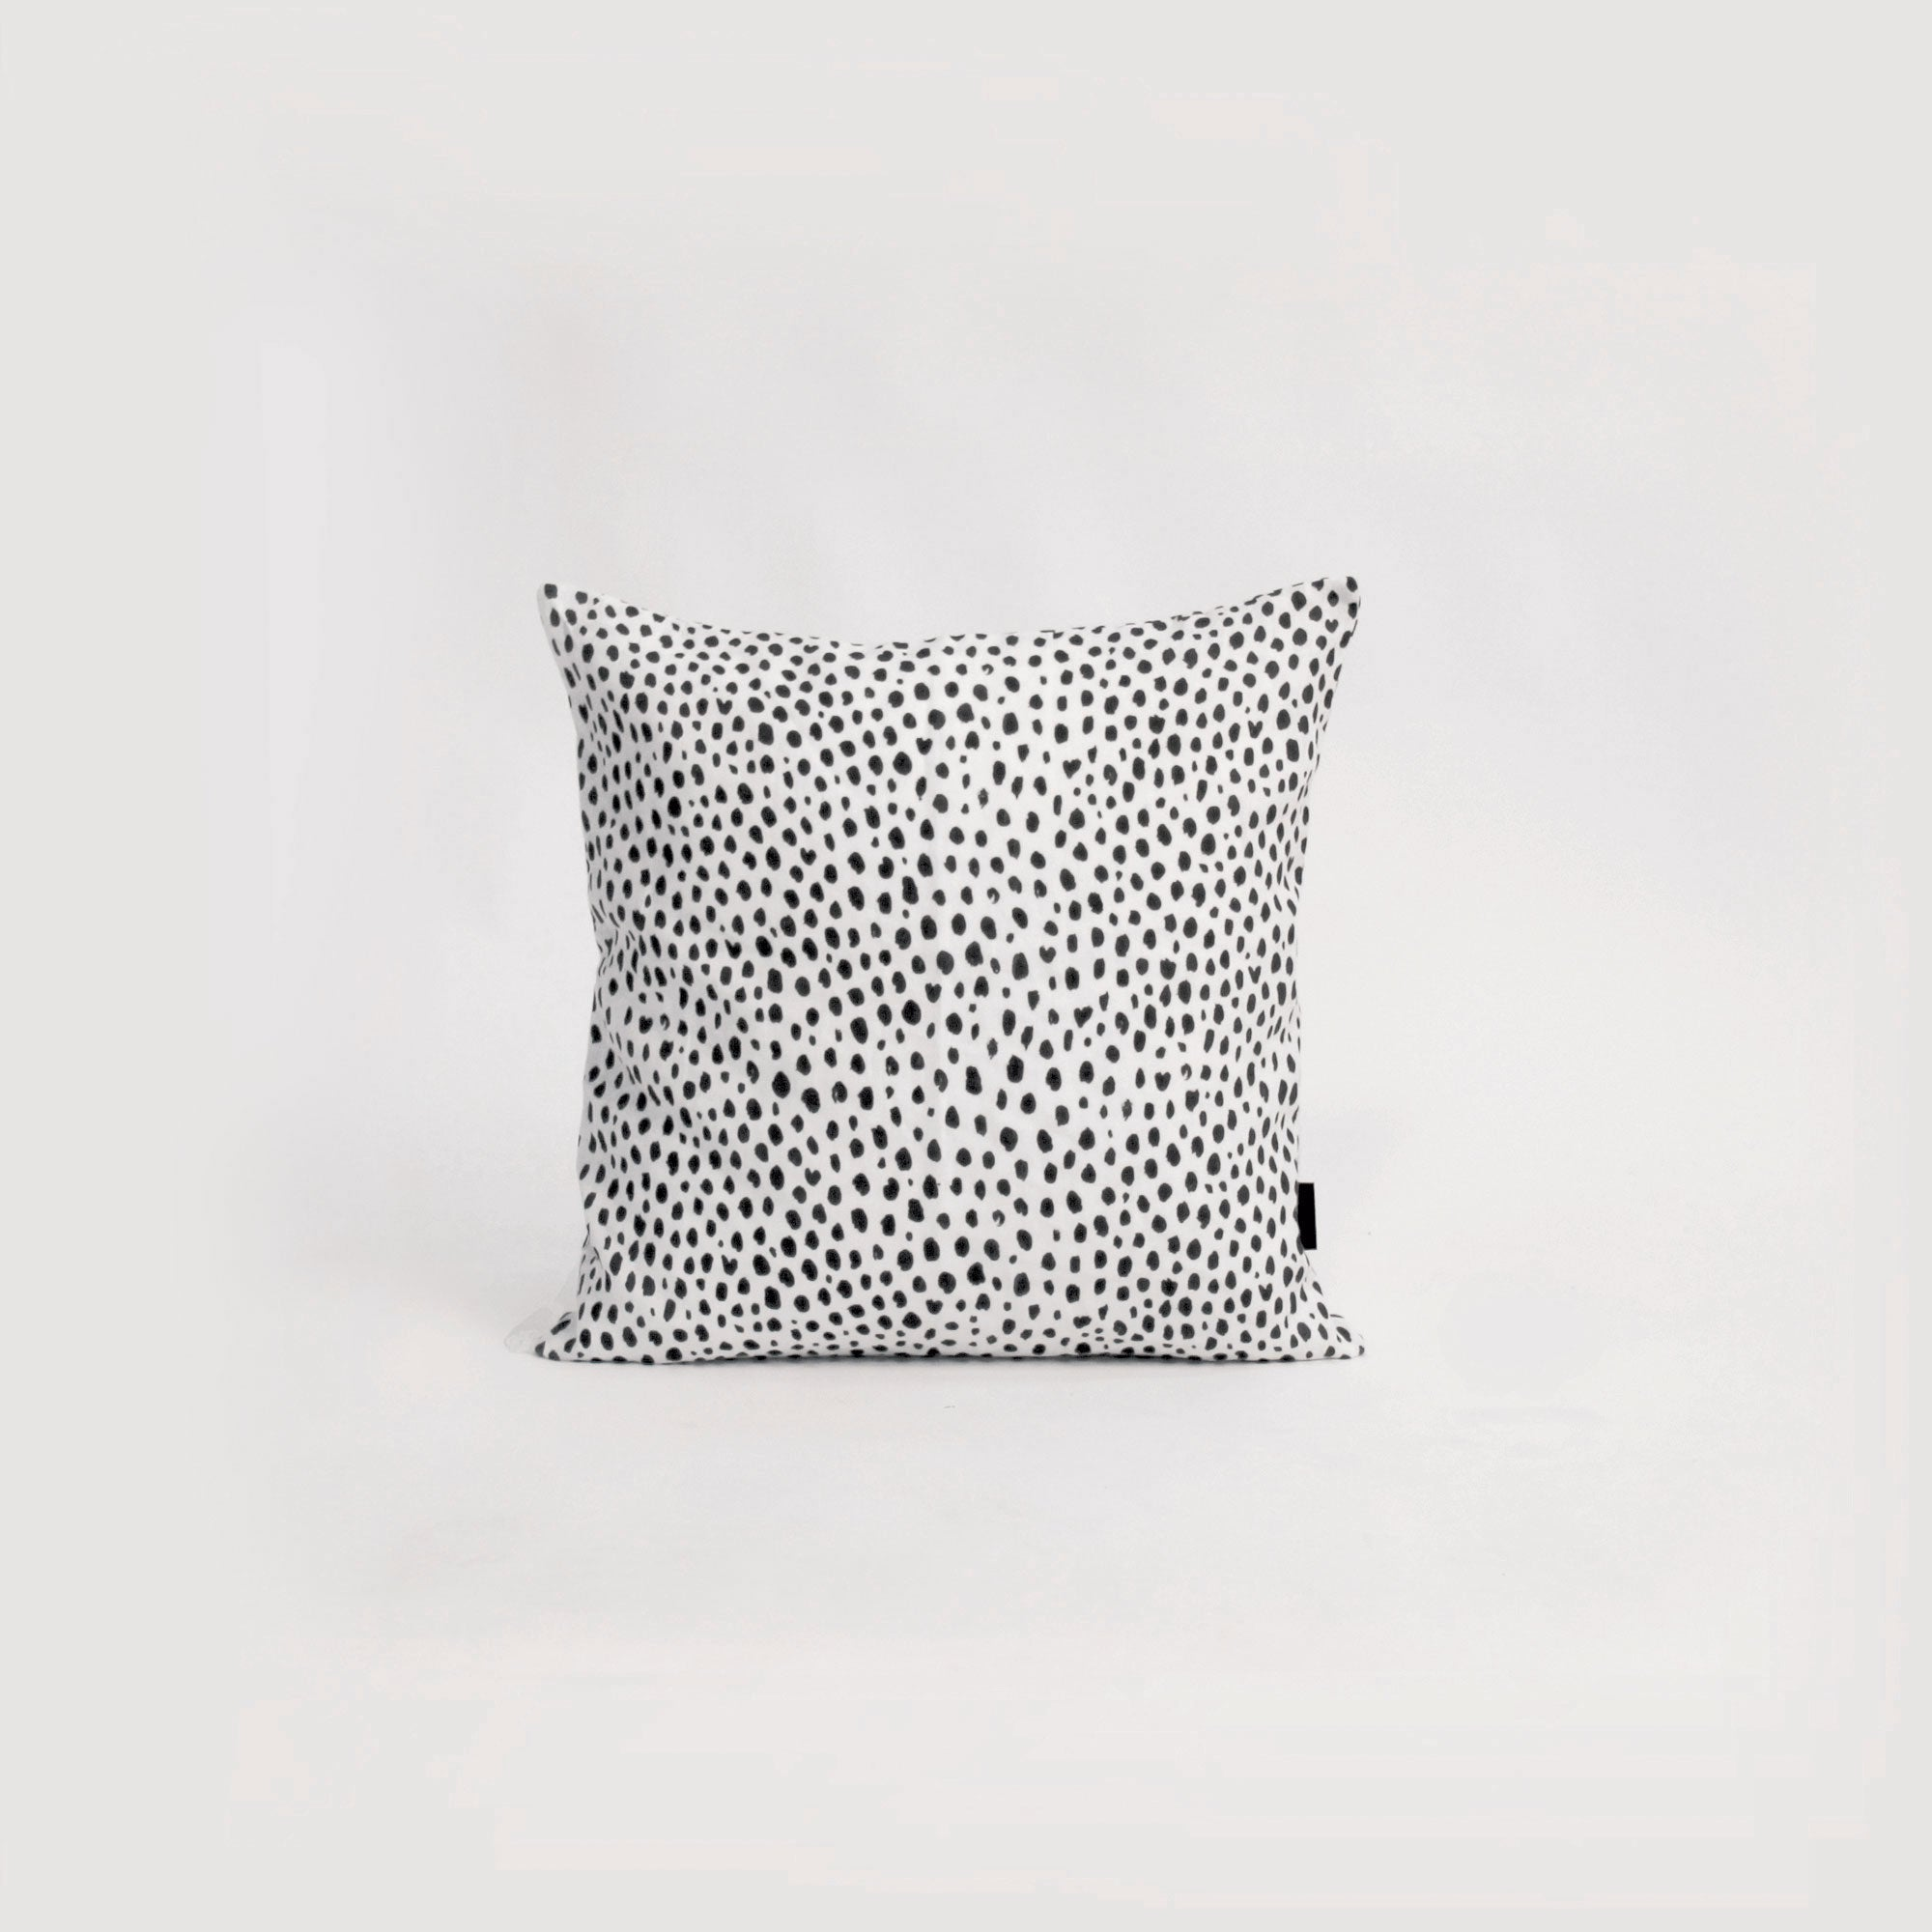 animal print cushion with black and white spots. Natural linen